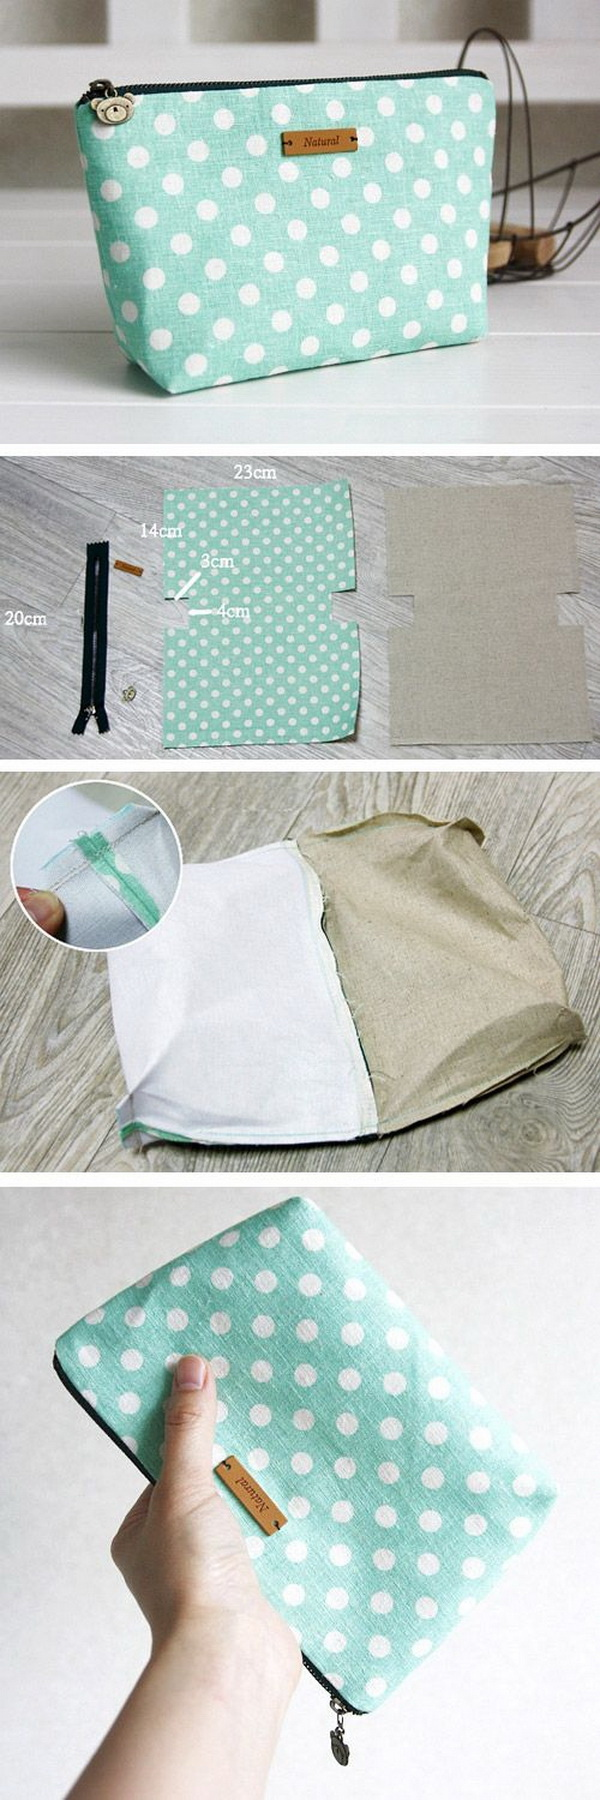 DIY Natural Linen And Cotton Zipper Cosmetic Bag. Want your cosmetic bag to be more unique and customized? Try out this easy sewing project this weekend! Easy, fun and quick to sew with a few steps!